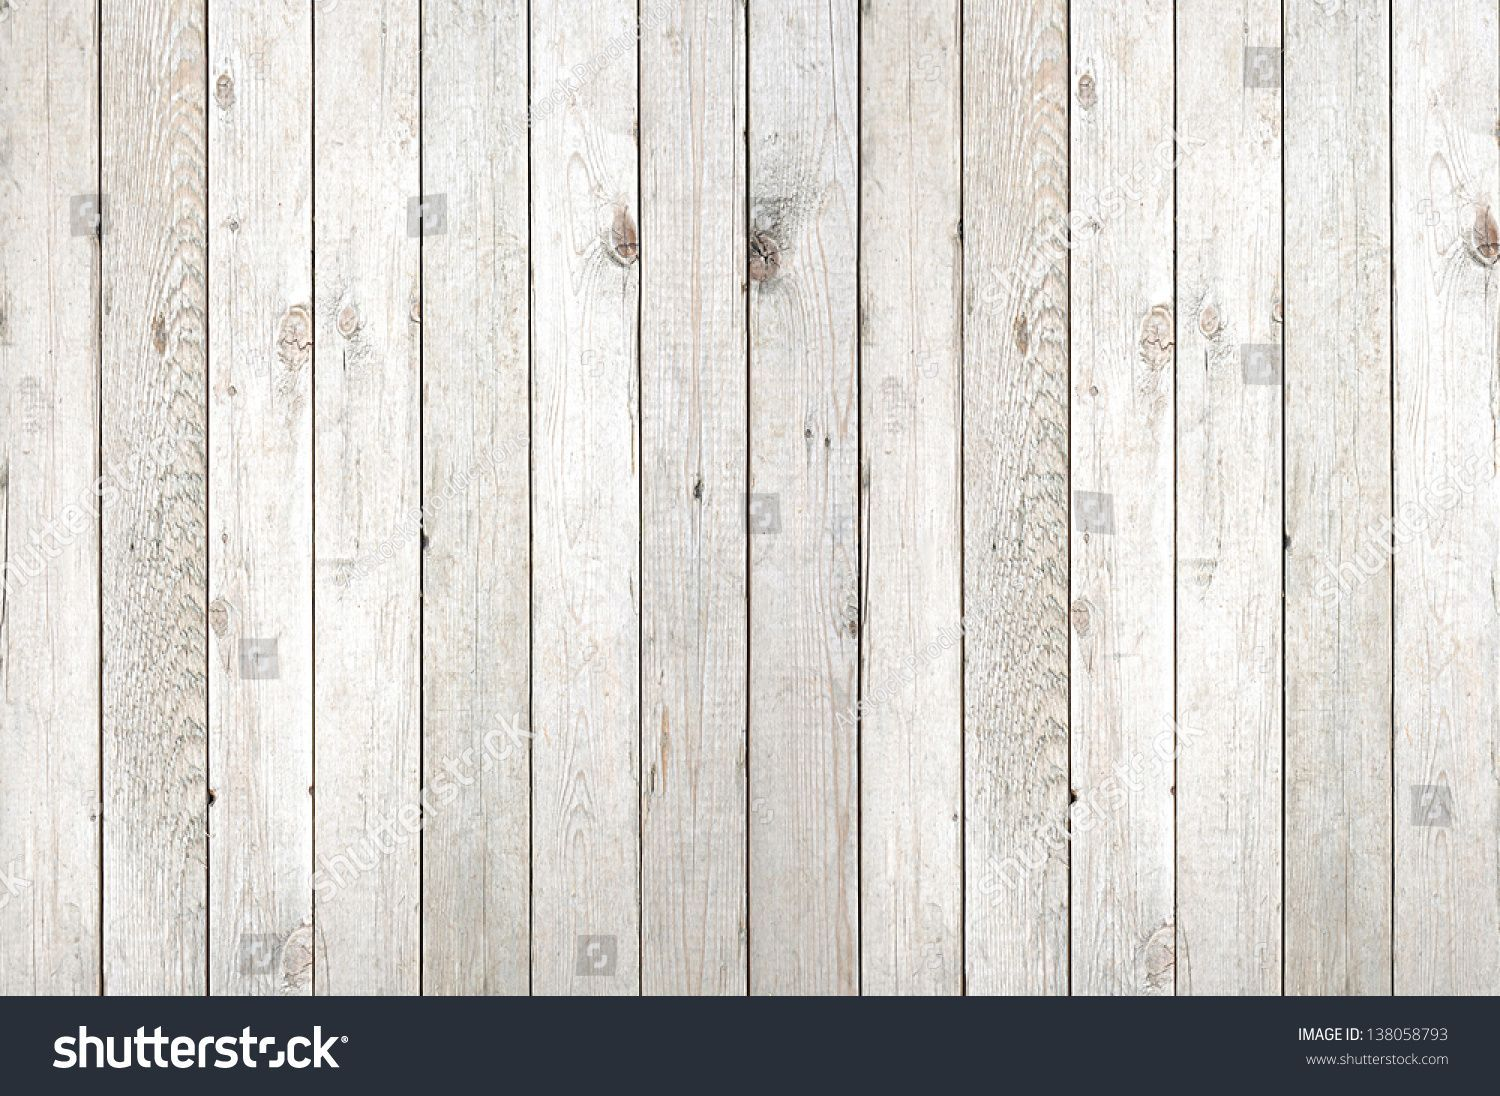 Wood texture background #Sponsored , #ad, #Wood#texture#background #woodtexturebackground Wood texture background #Sponsored , #ad, #Wood#texture#background #woodtexturebackground